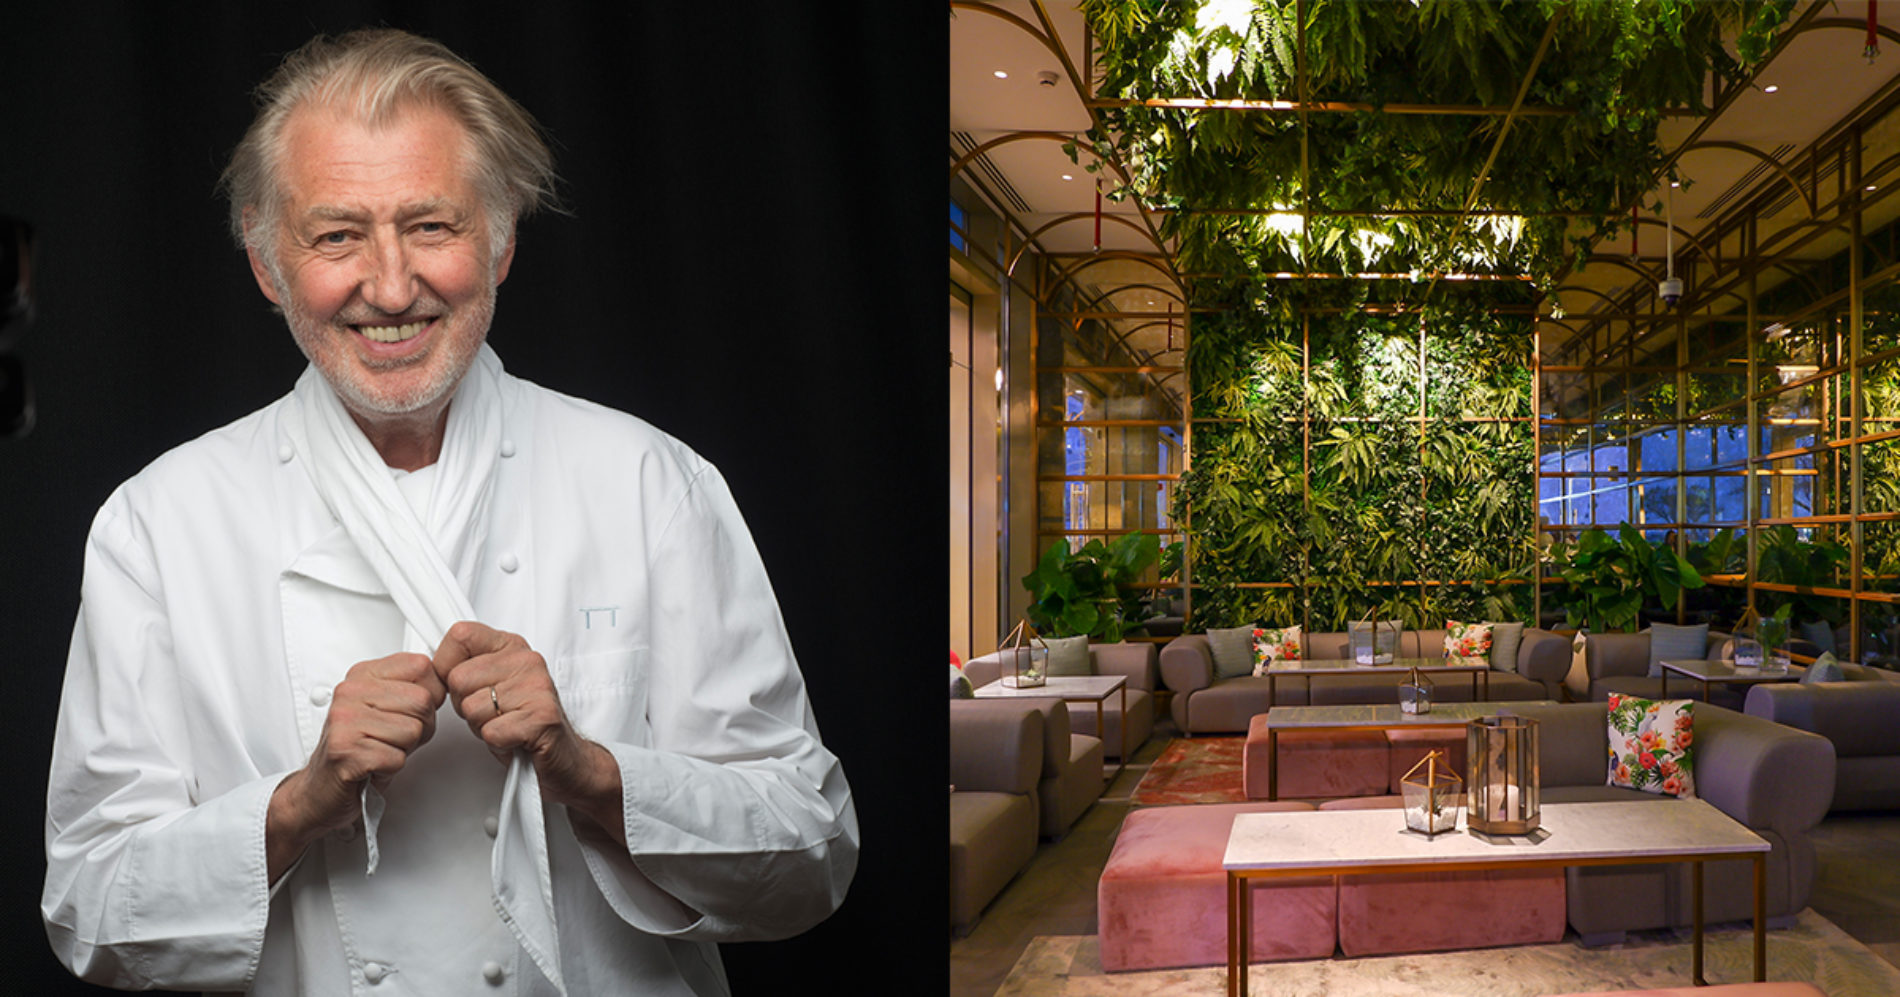 The world's greatest: A glimpse into Pierre Gagnaire's 50+ year career